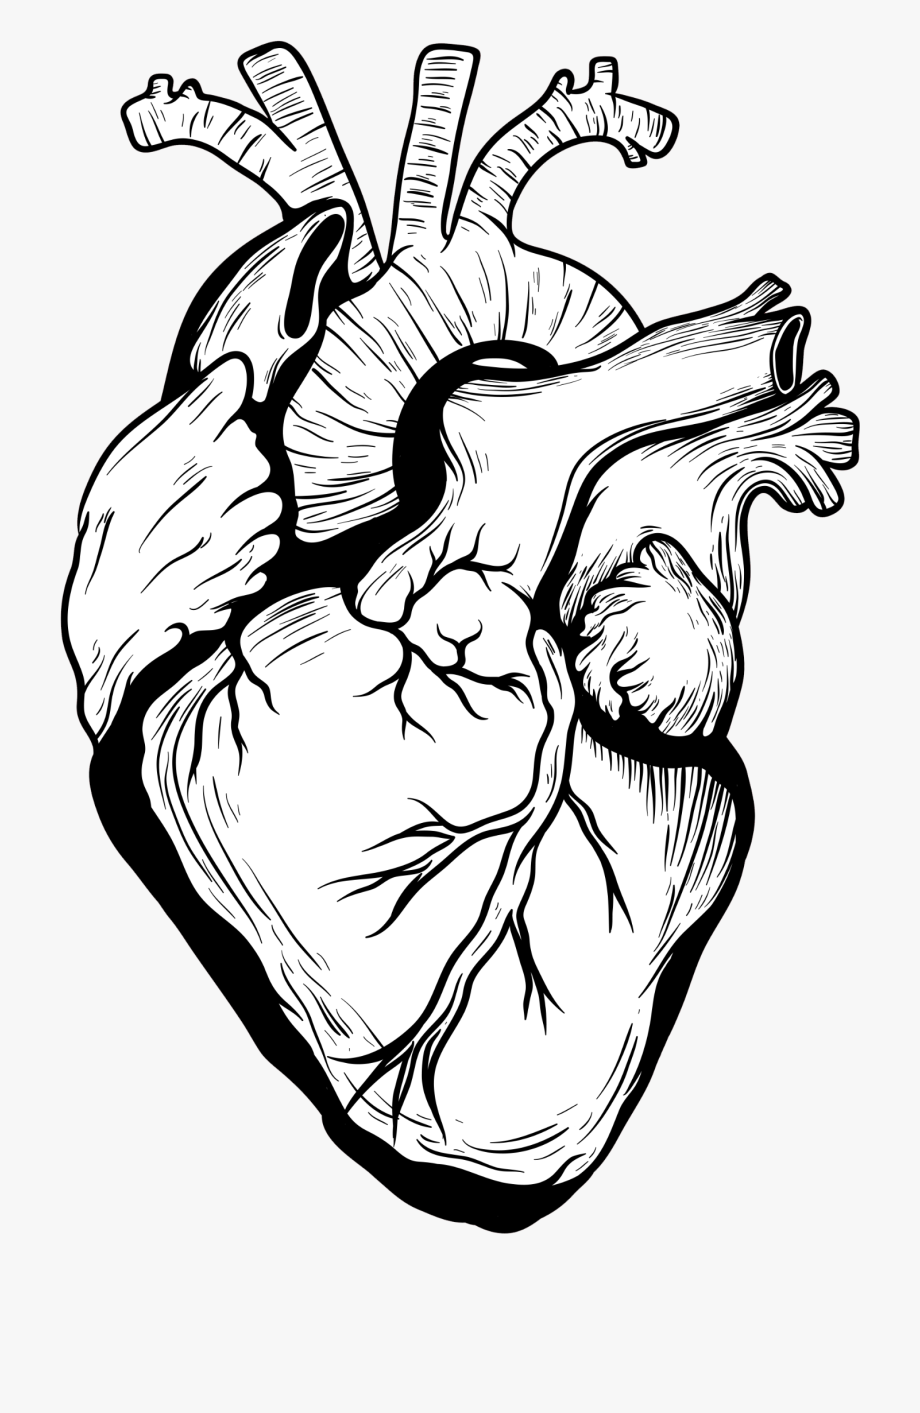 Real Heart Drawing : heart, drawing, Heart, Drawing, Human, Drawing,, Anatomy